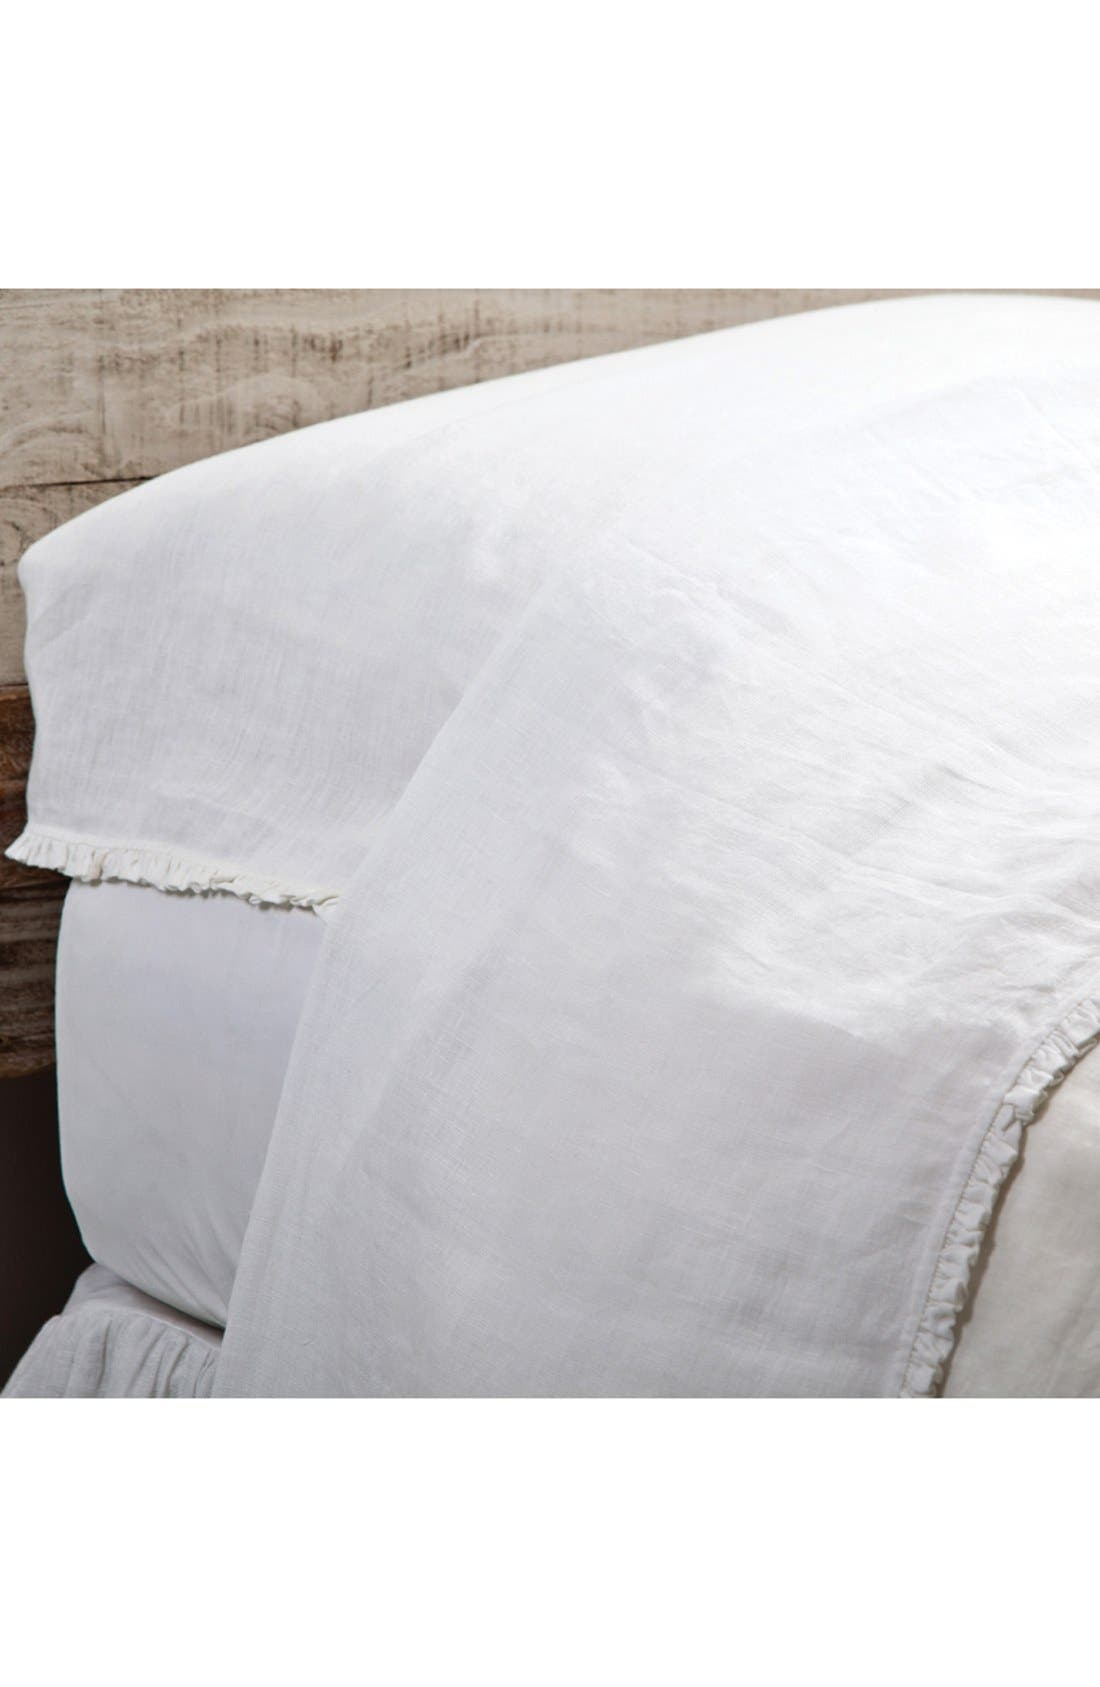 Pom Pom at Home 'Charlie' Linen Flat Sheet